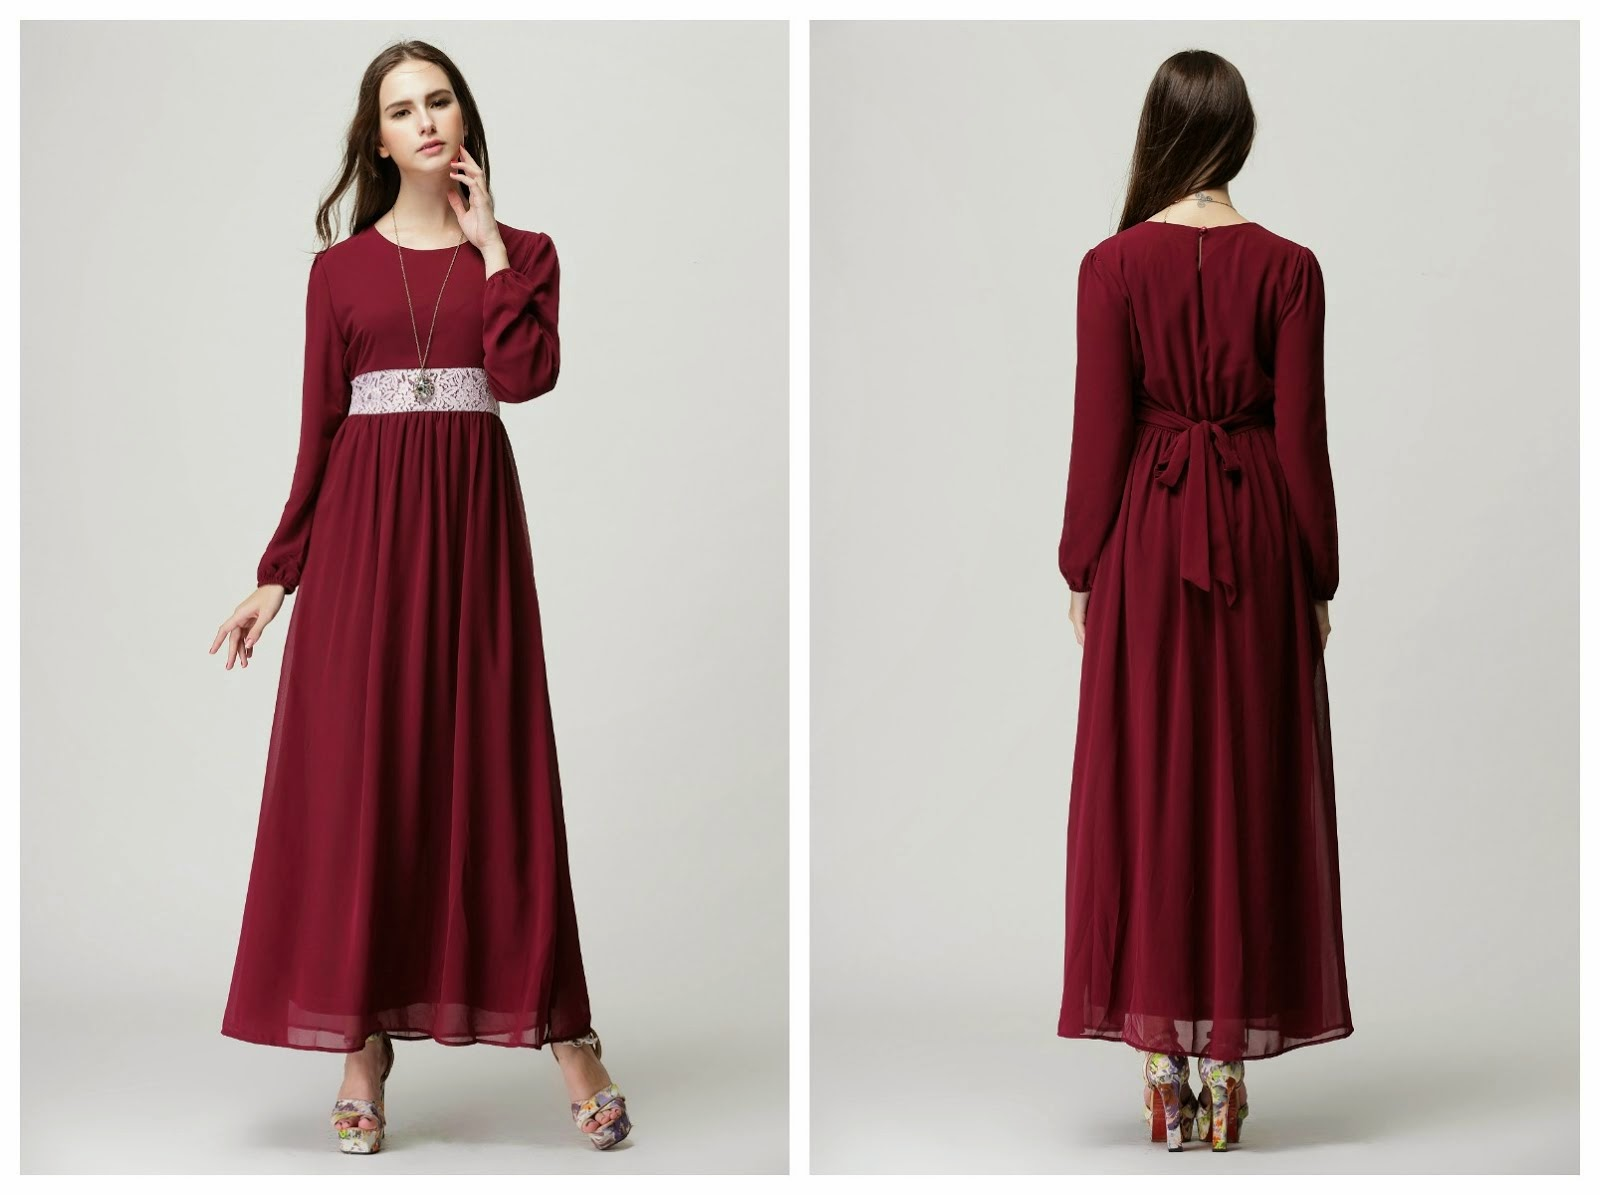 TRENDY JUBAH. CLICK TO VIEW